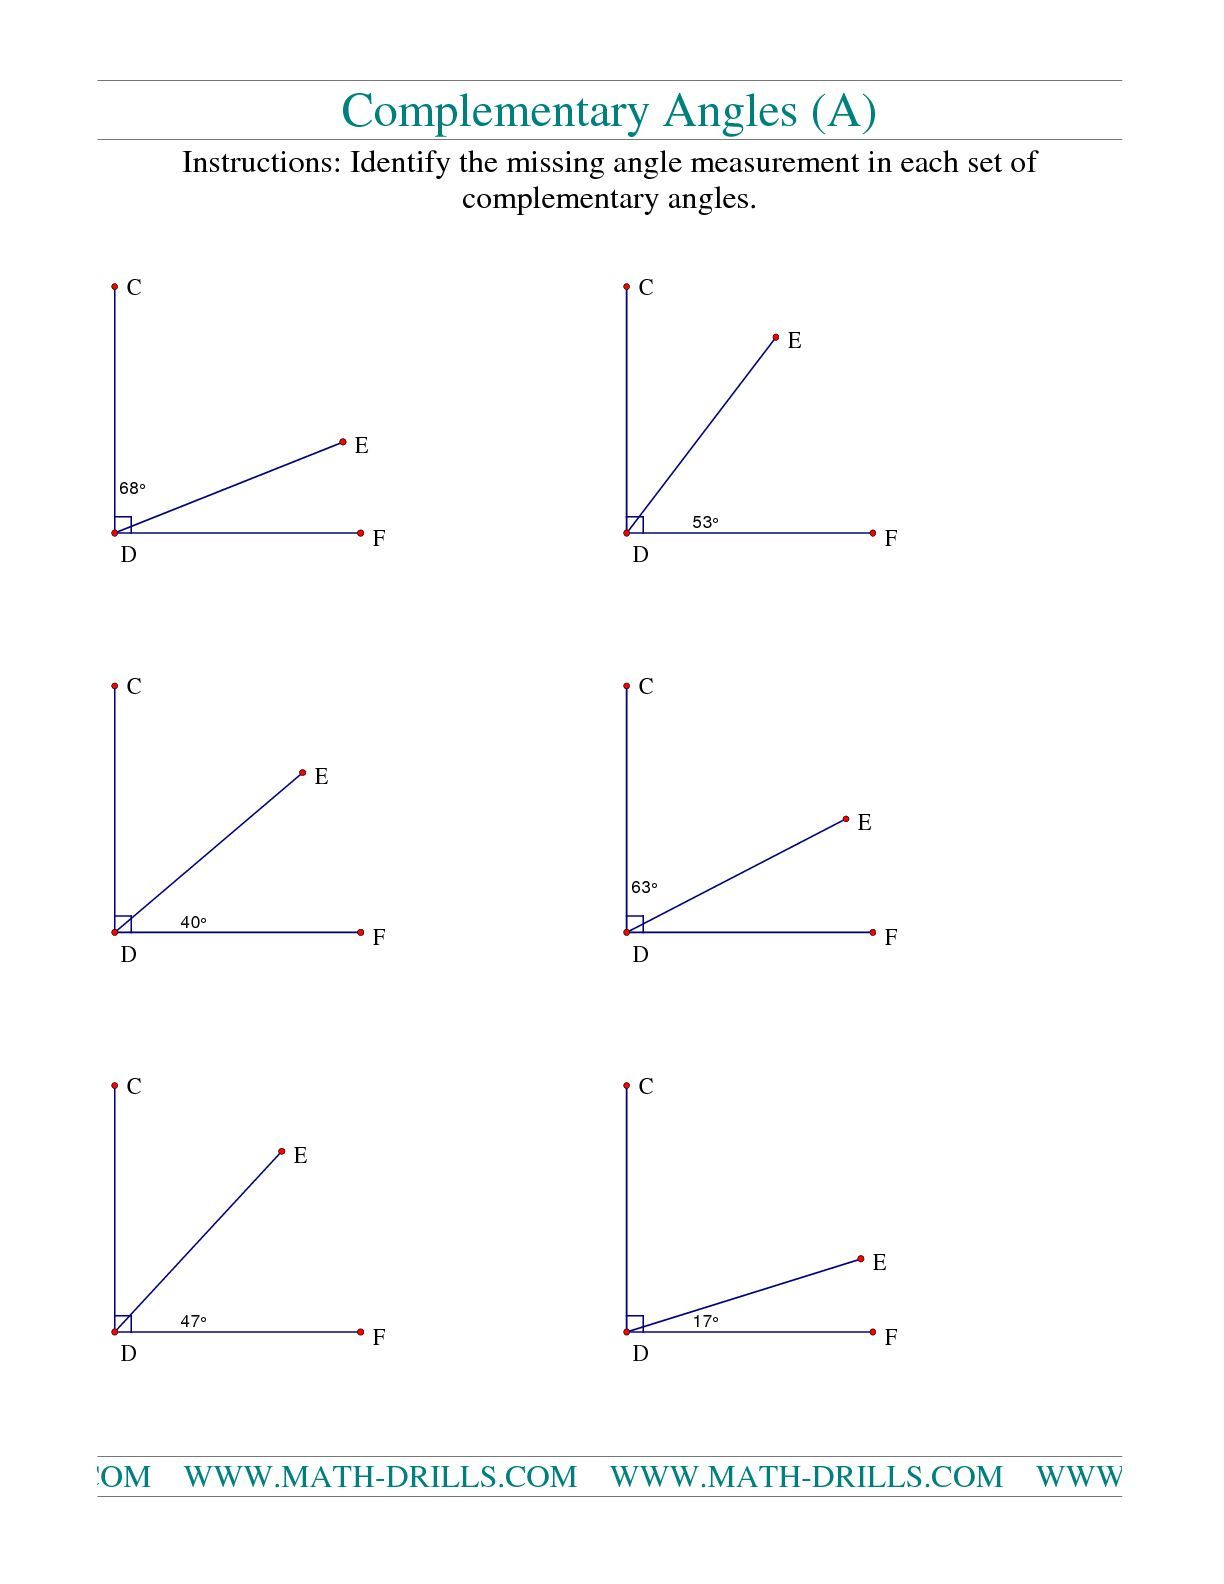 Supplementaty Complementary Angles Worksheet